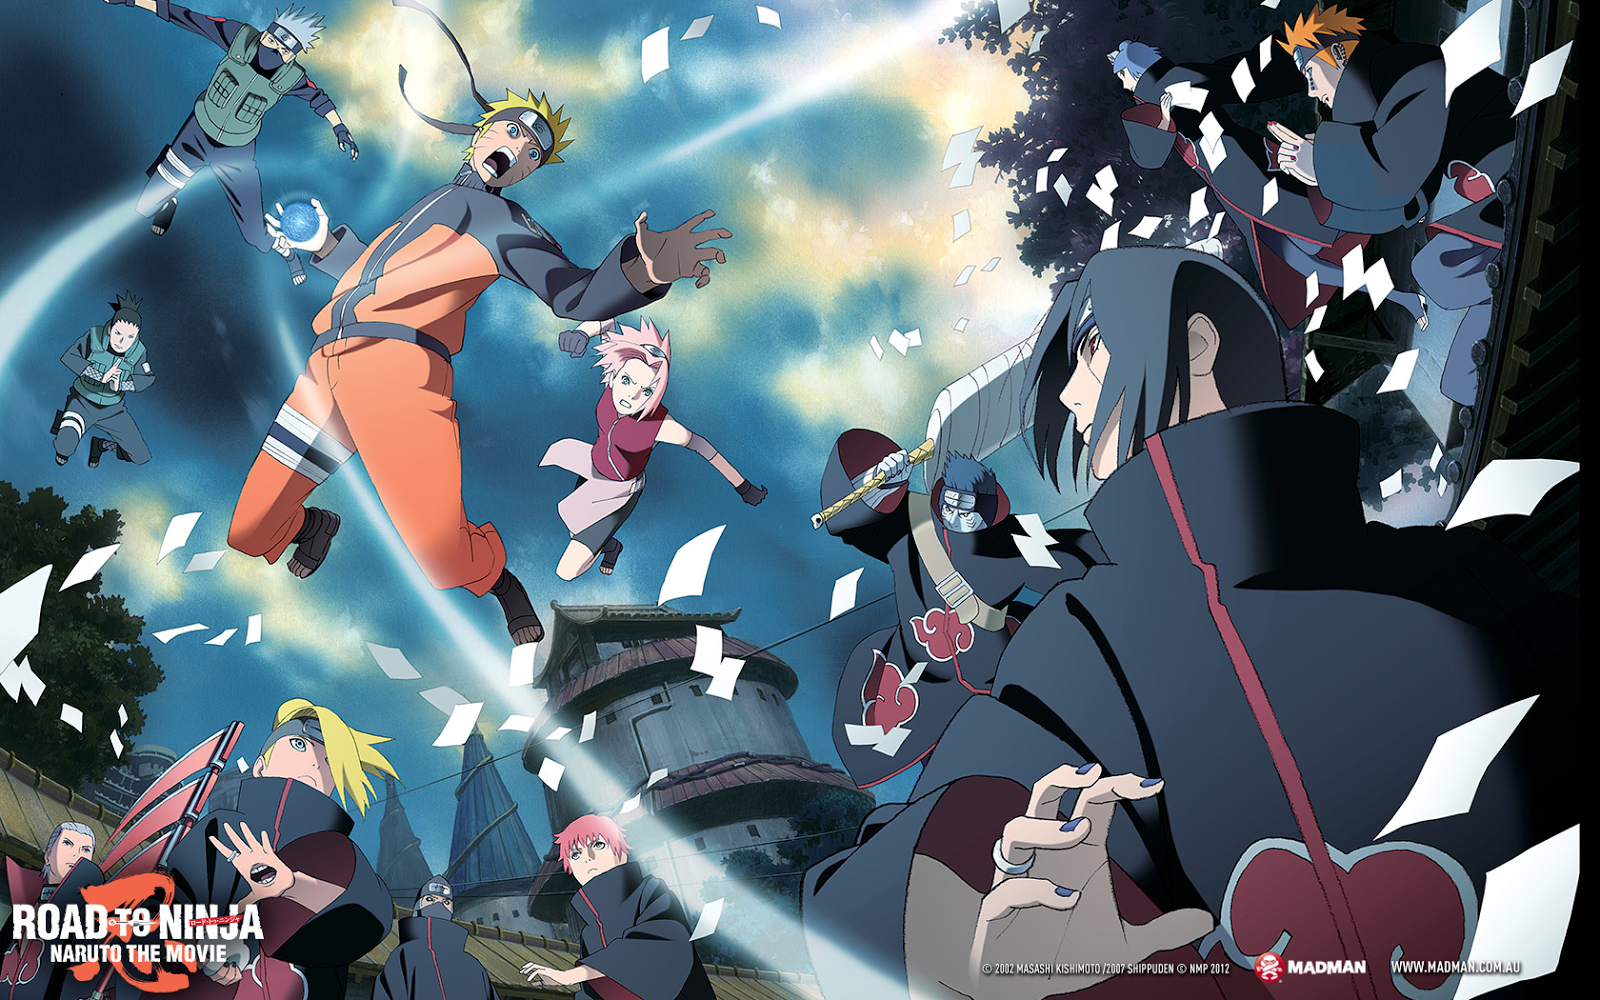 Connu Naruto Shippuden HD Wallpaper Pack | Manga Council TG56